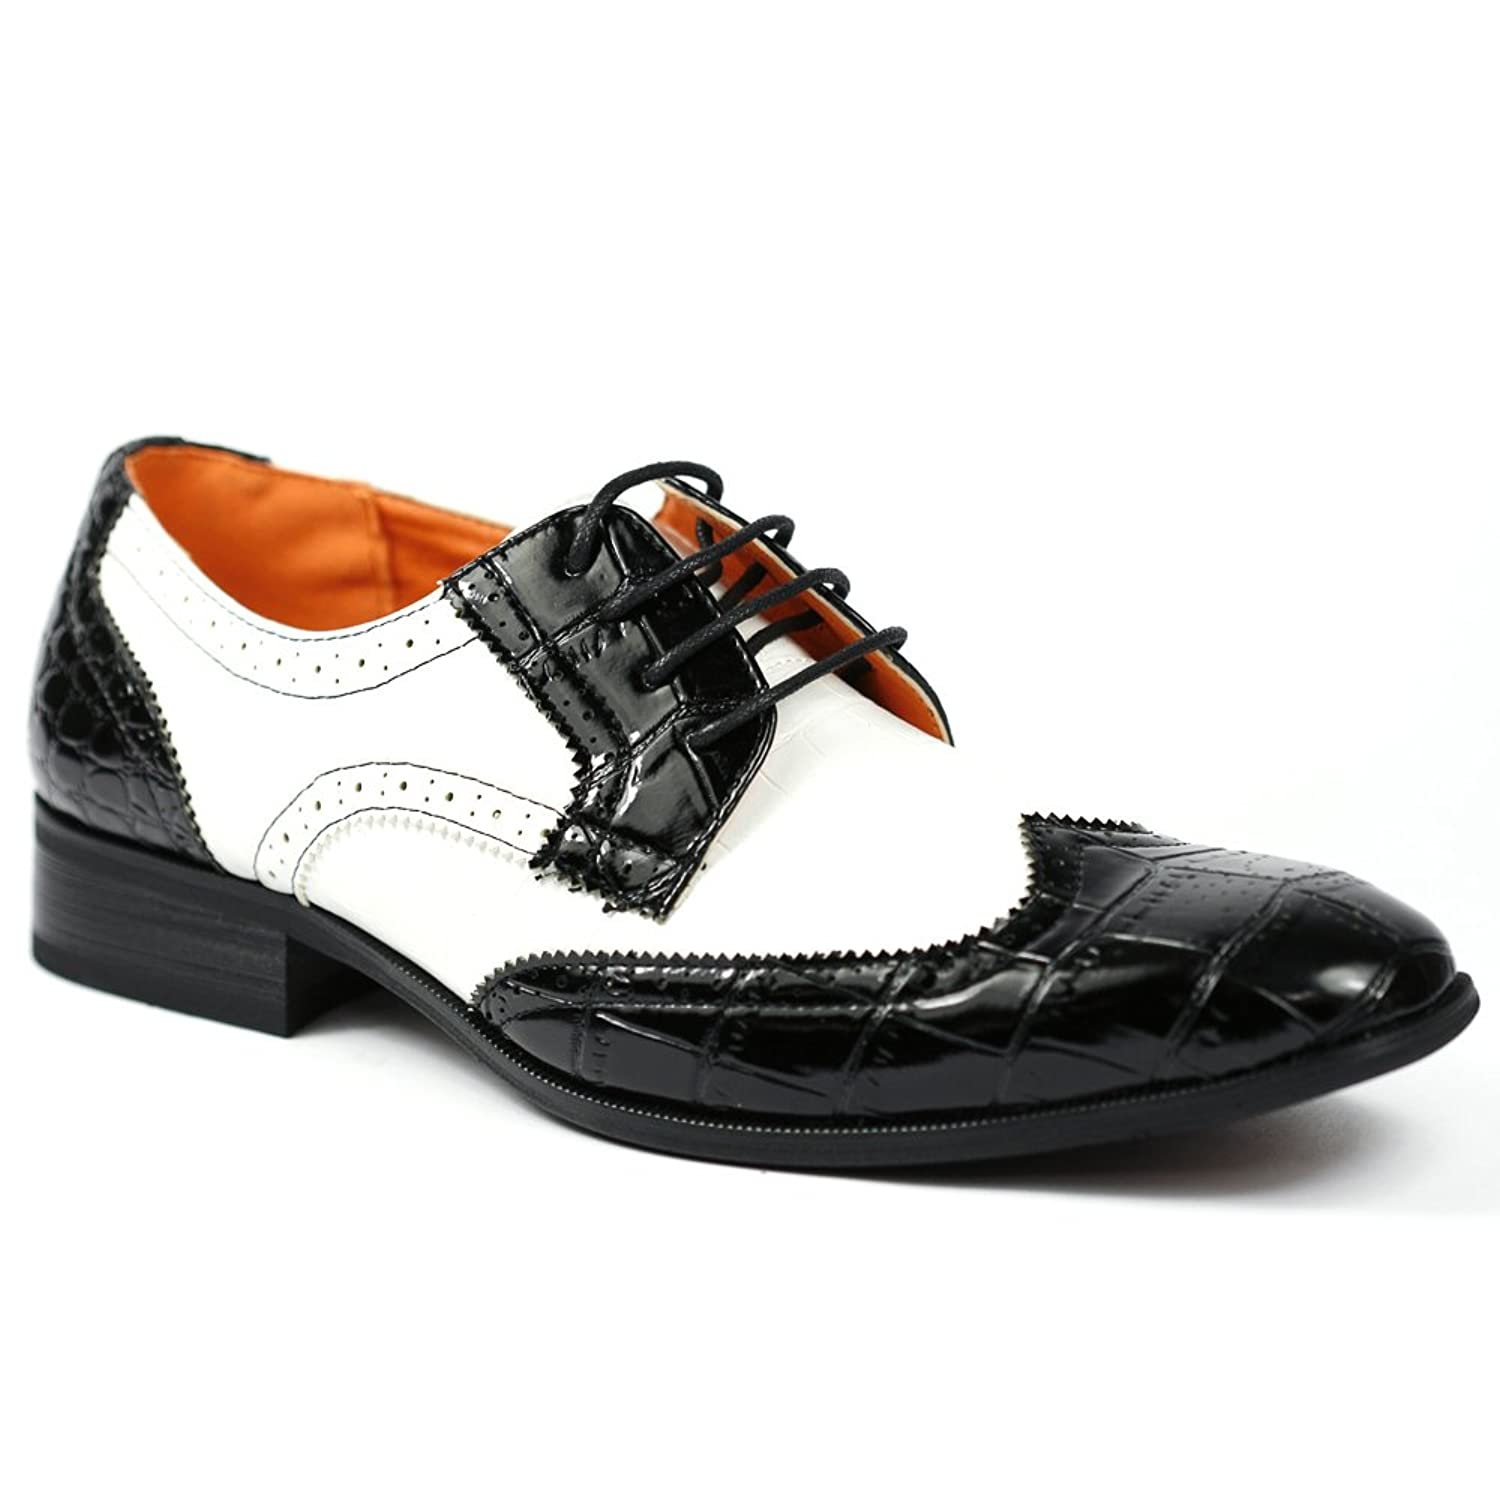 1960s Mens Shoes- Retro, Mod, Vintage Inspired Mens Lace Up Wing Tip Proforated Oxford Dress Shoes w/ Leather Lining $39.99 AT vintagedancer.com